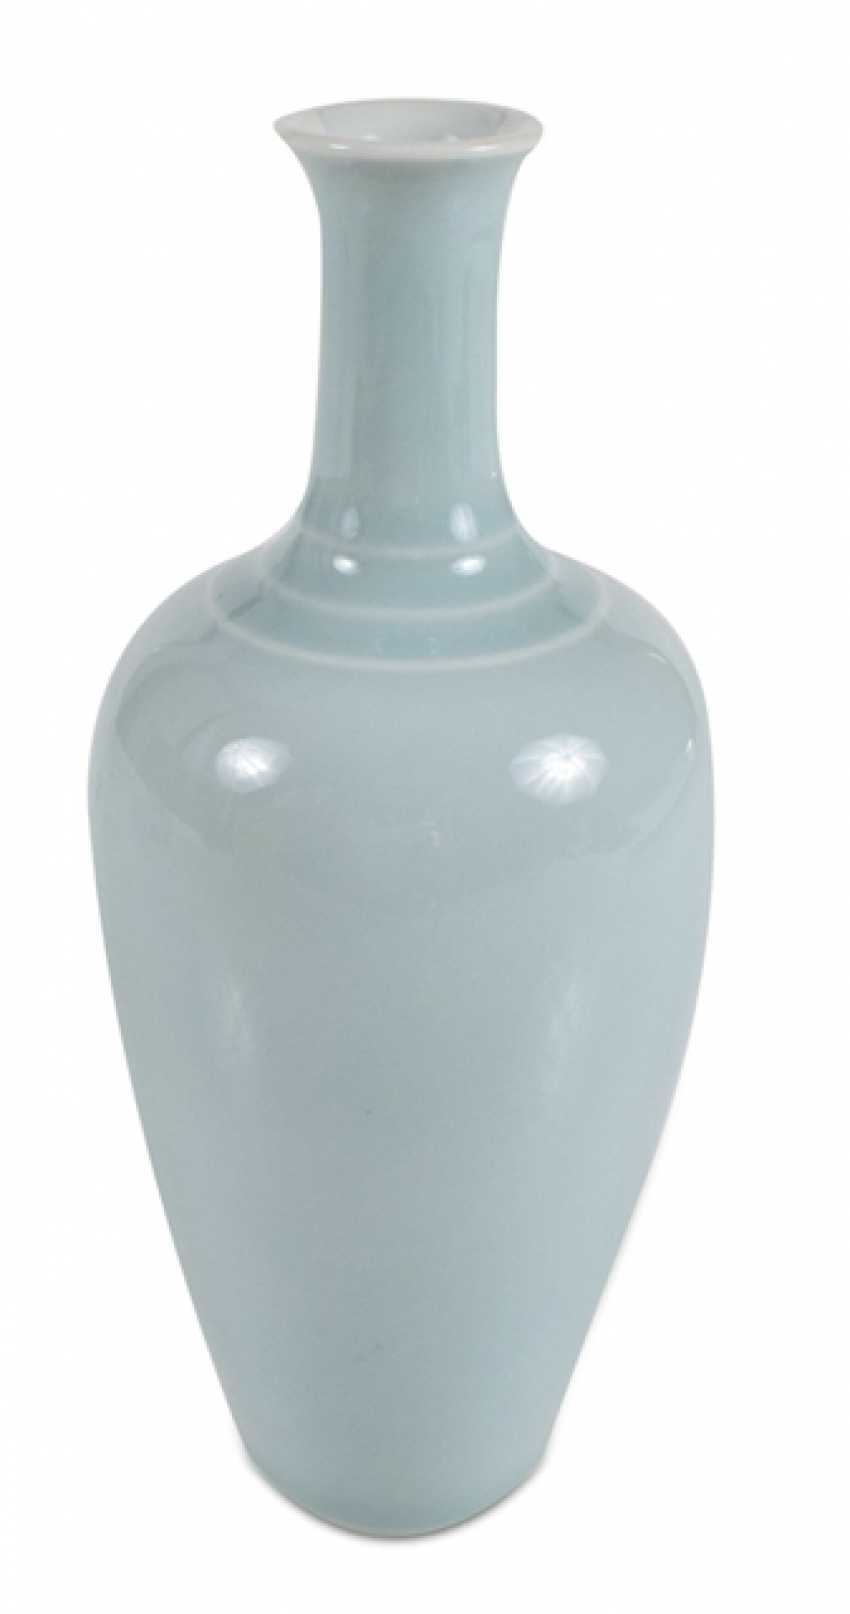 Small porcelain vase with pale blue glaze, laifuzun - photo 1